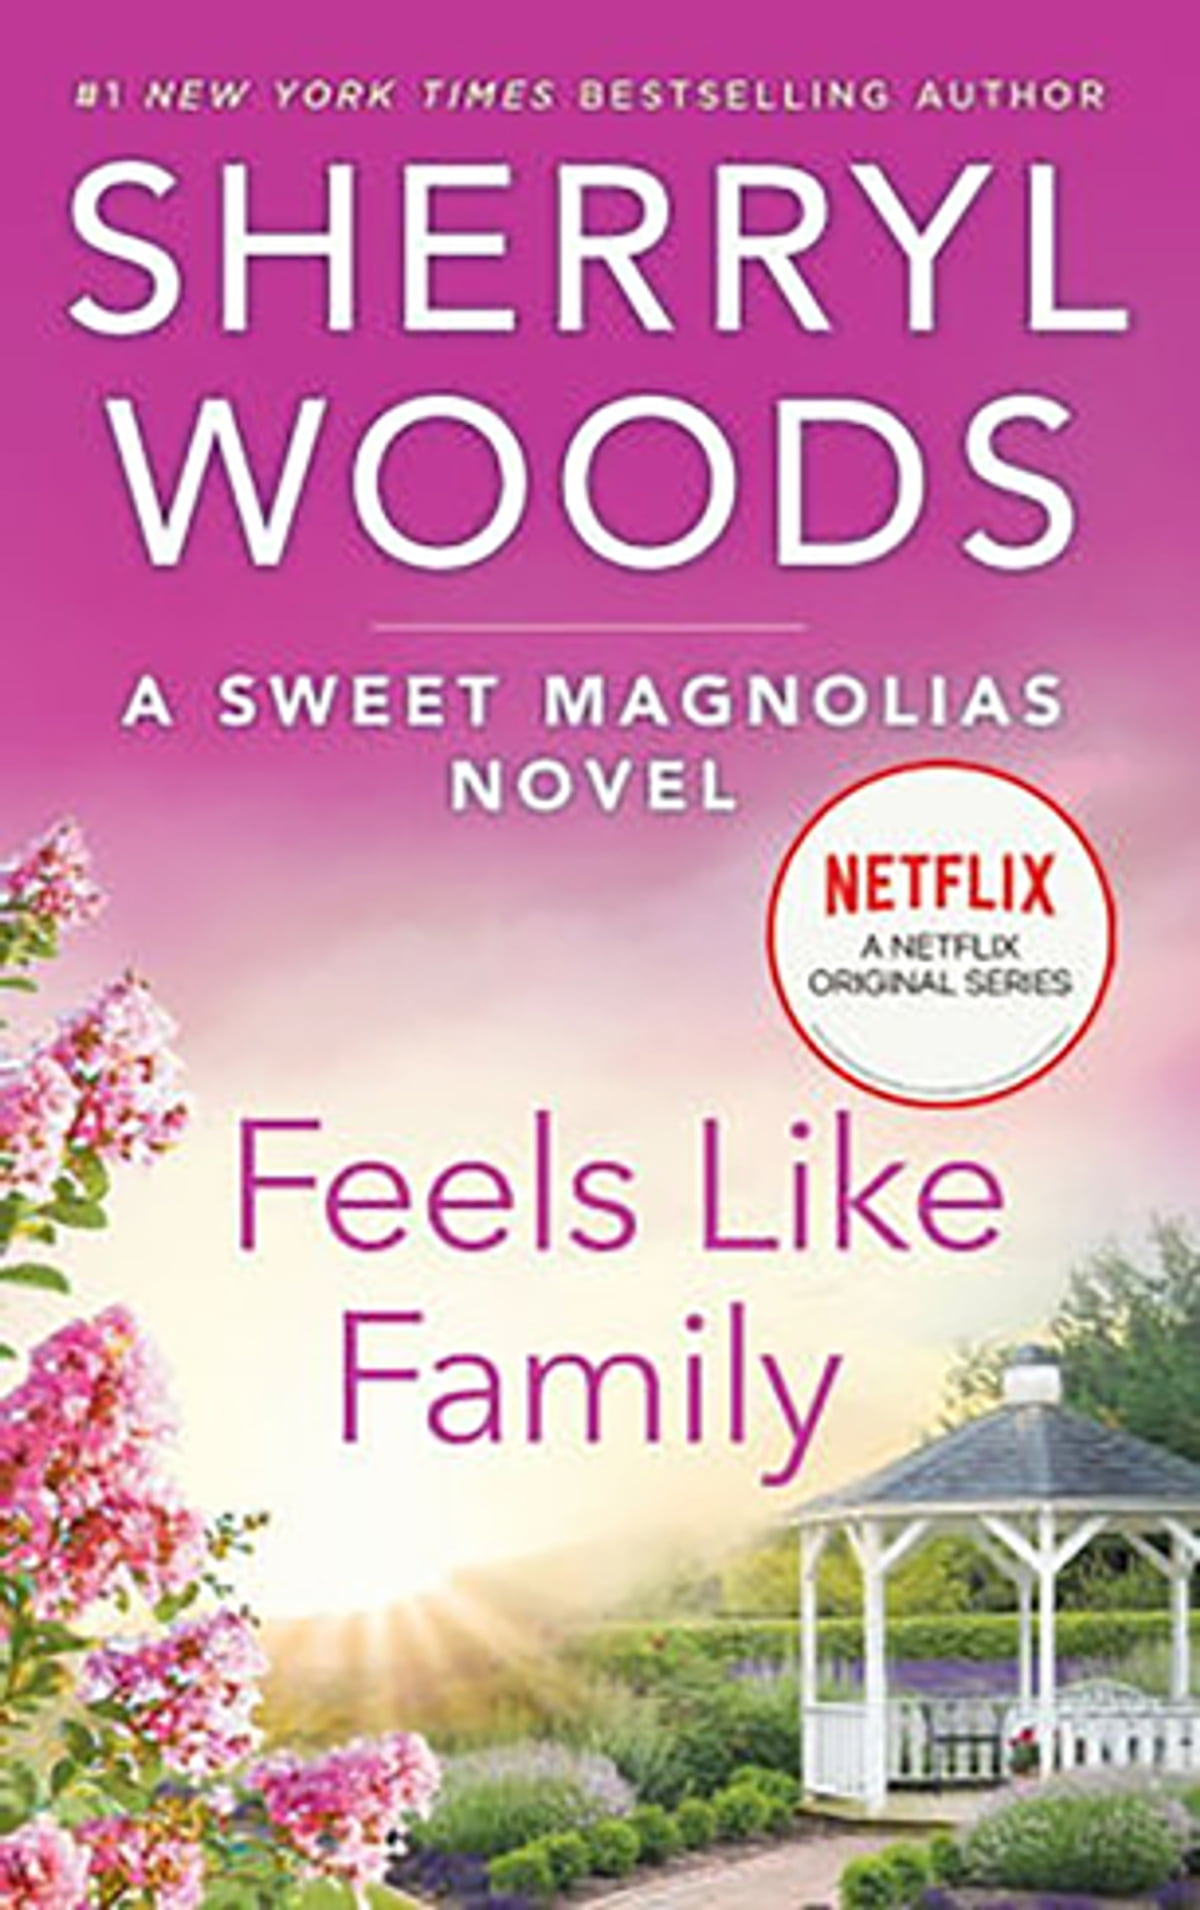 Feels Like Family eBook by Sherryl Woods - 9781459247512 | Rakuten Kobo  United States